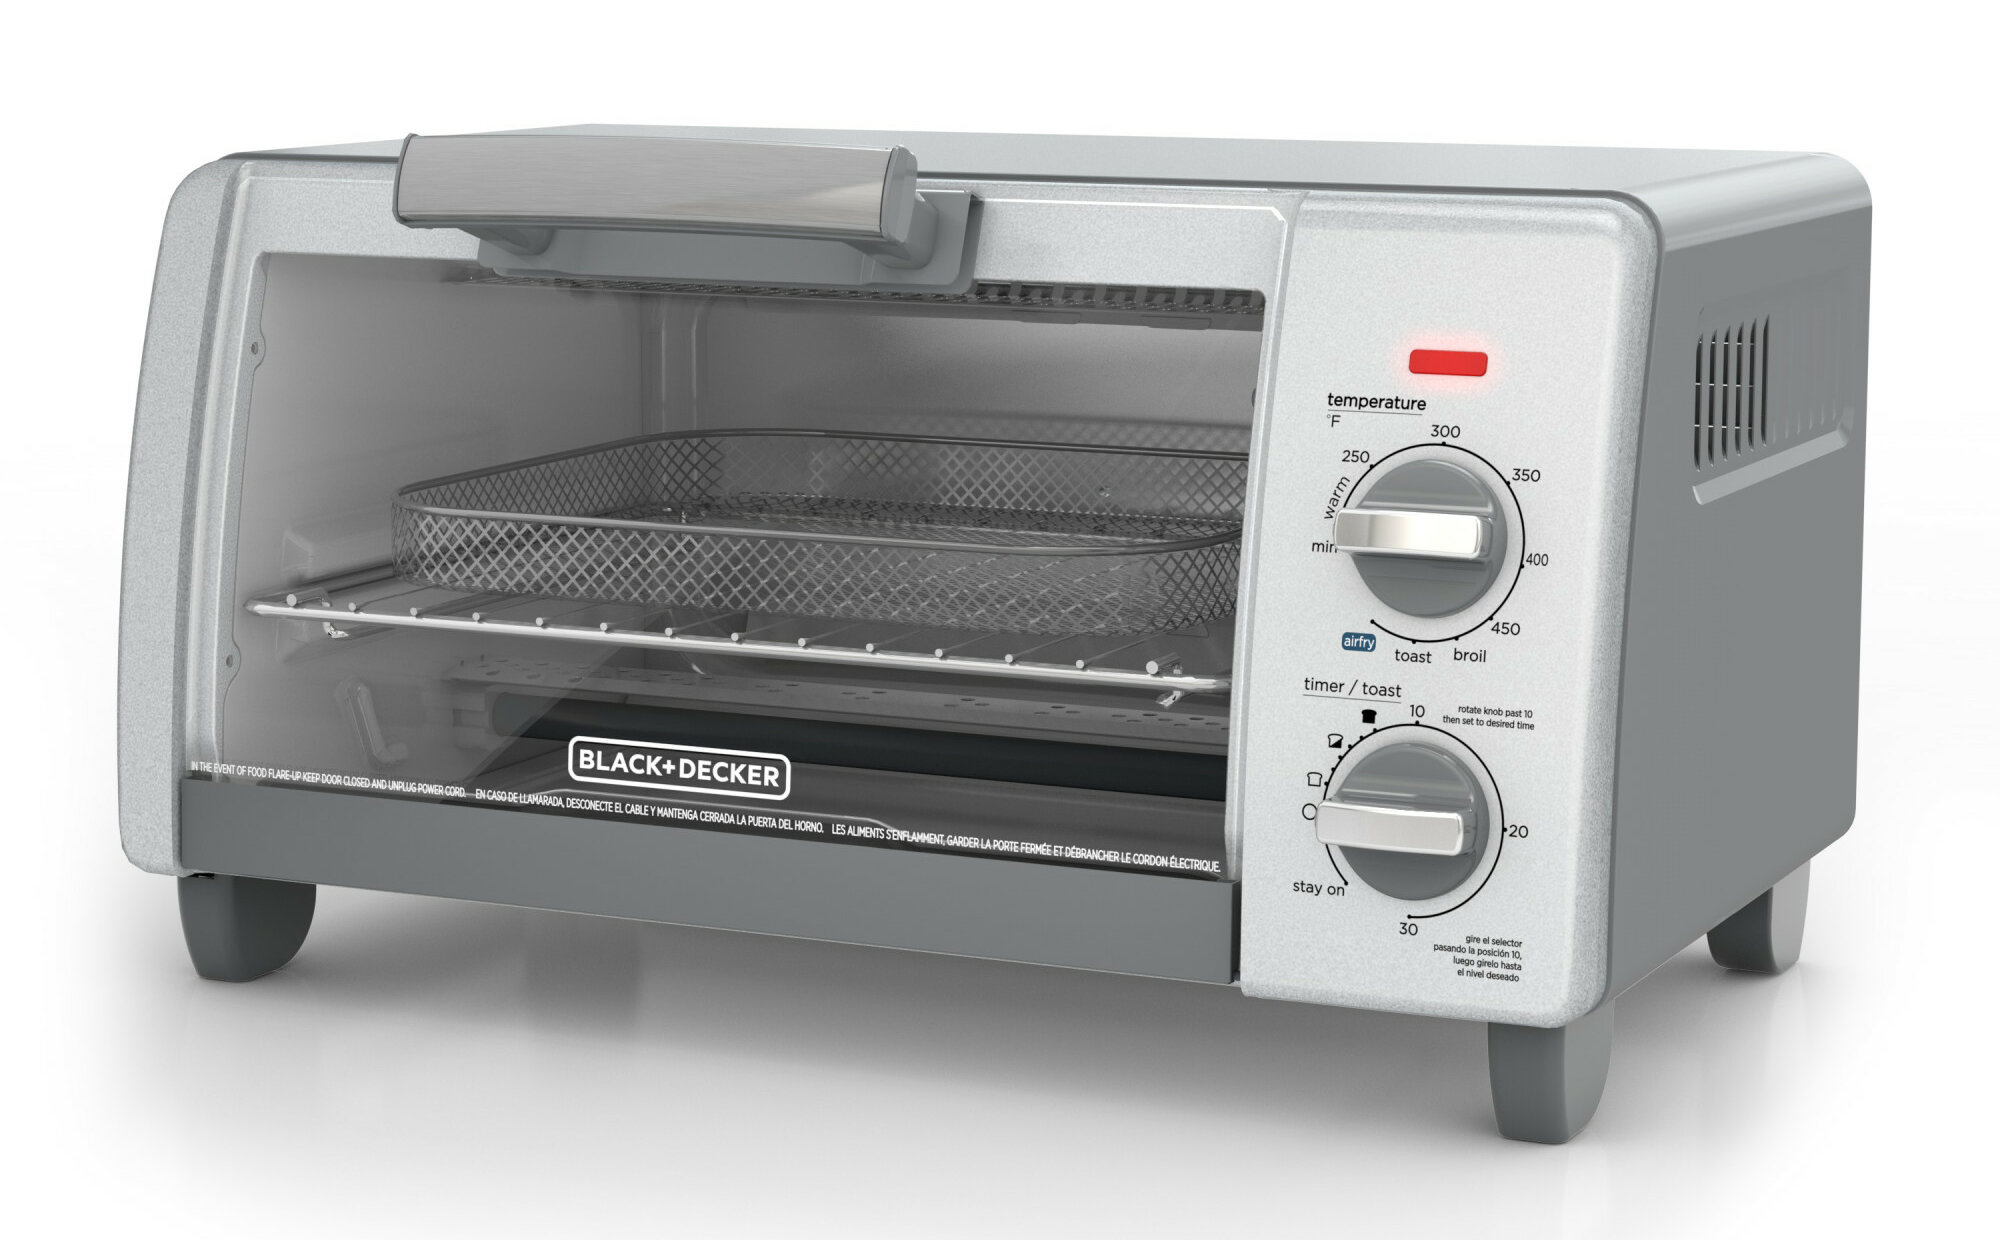 Black And Decker Toaster Oven Air Fryer Reviews